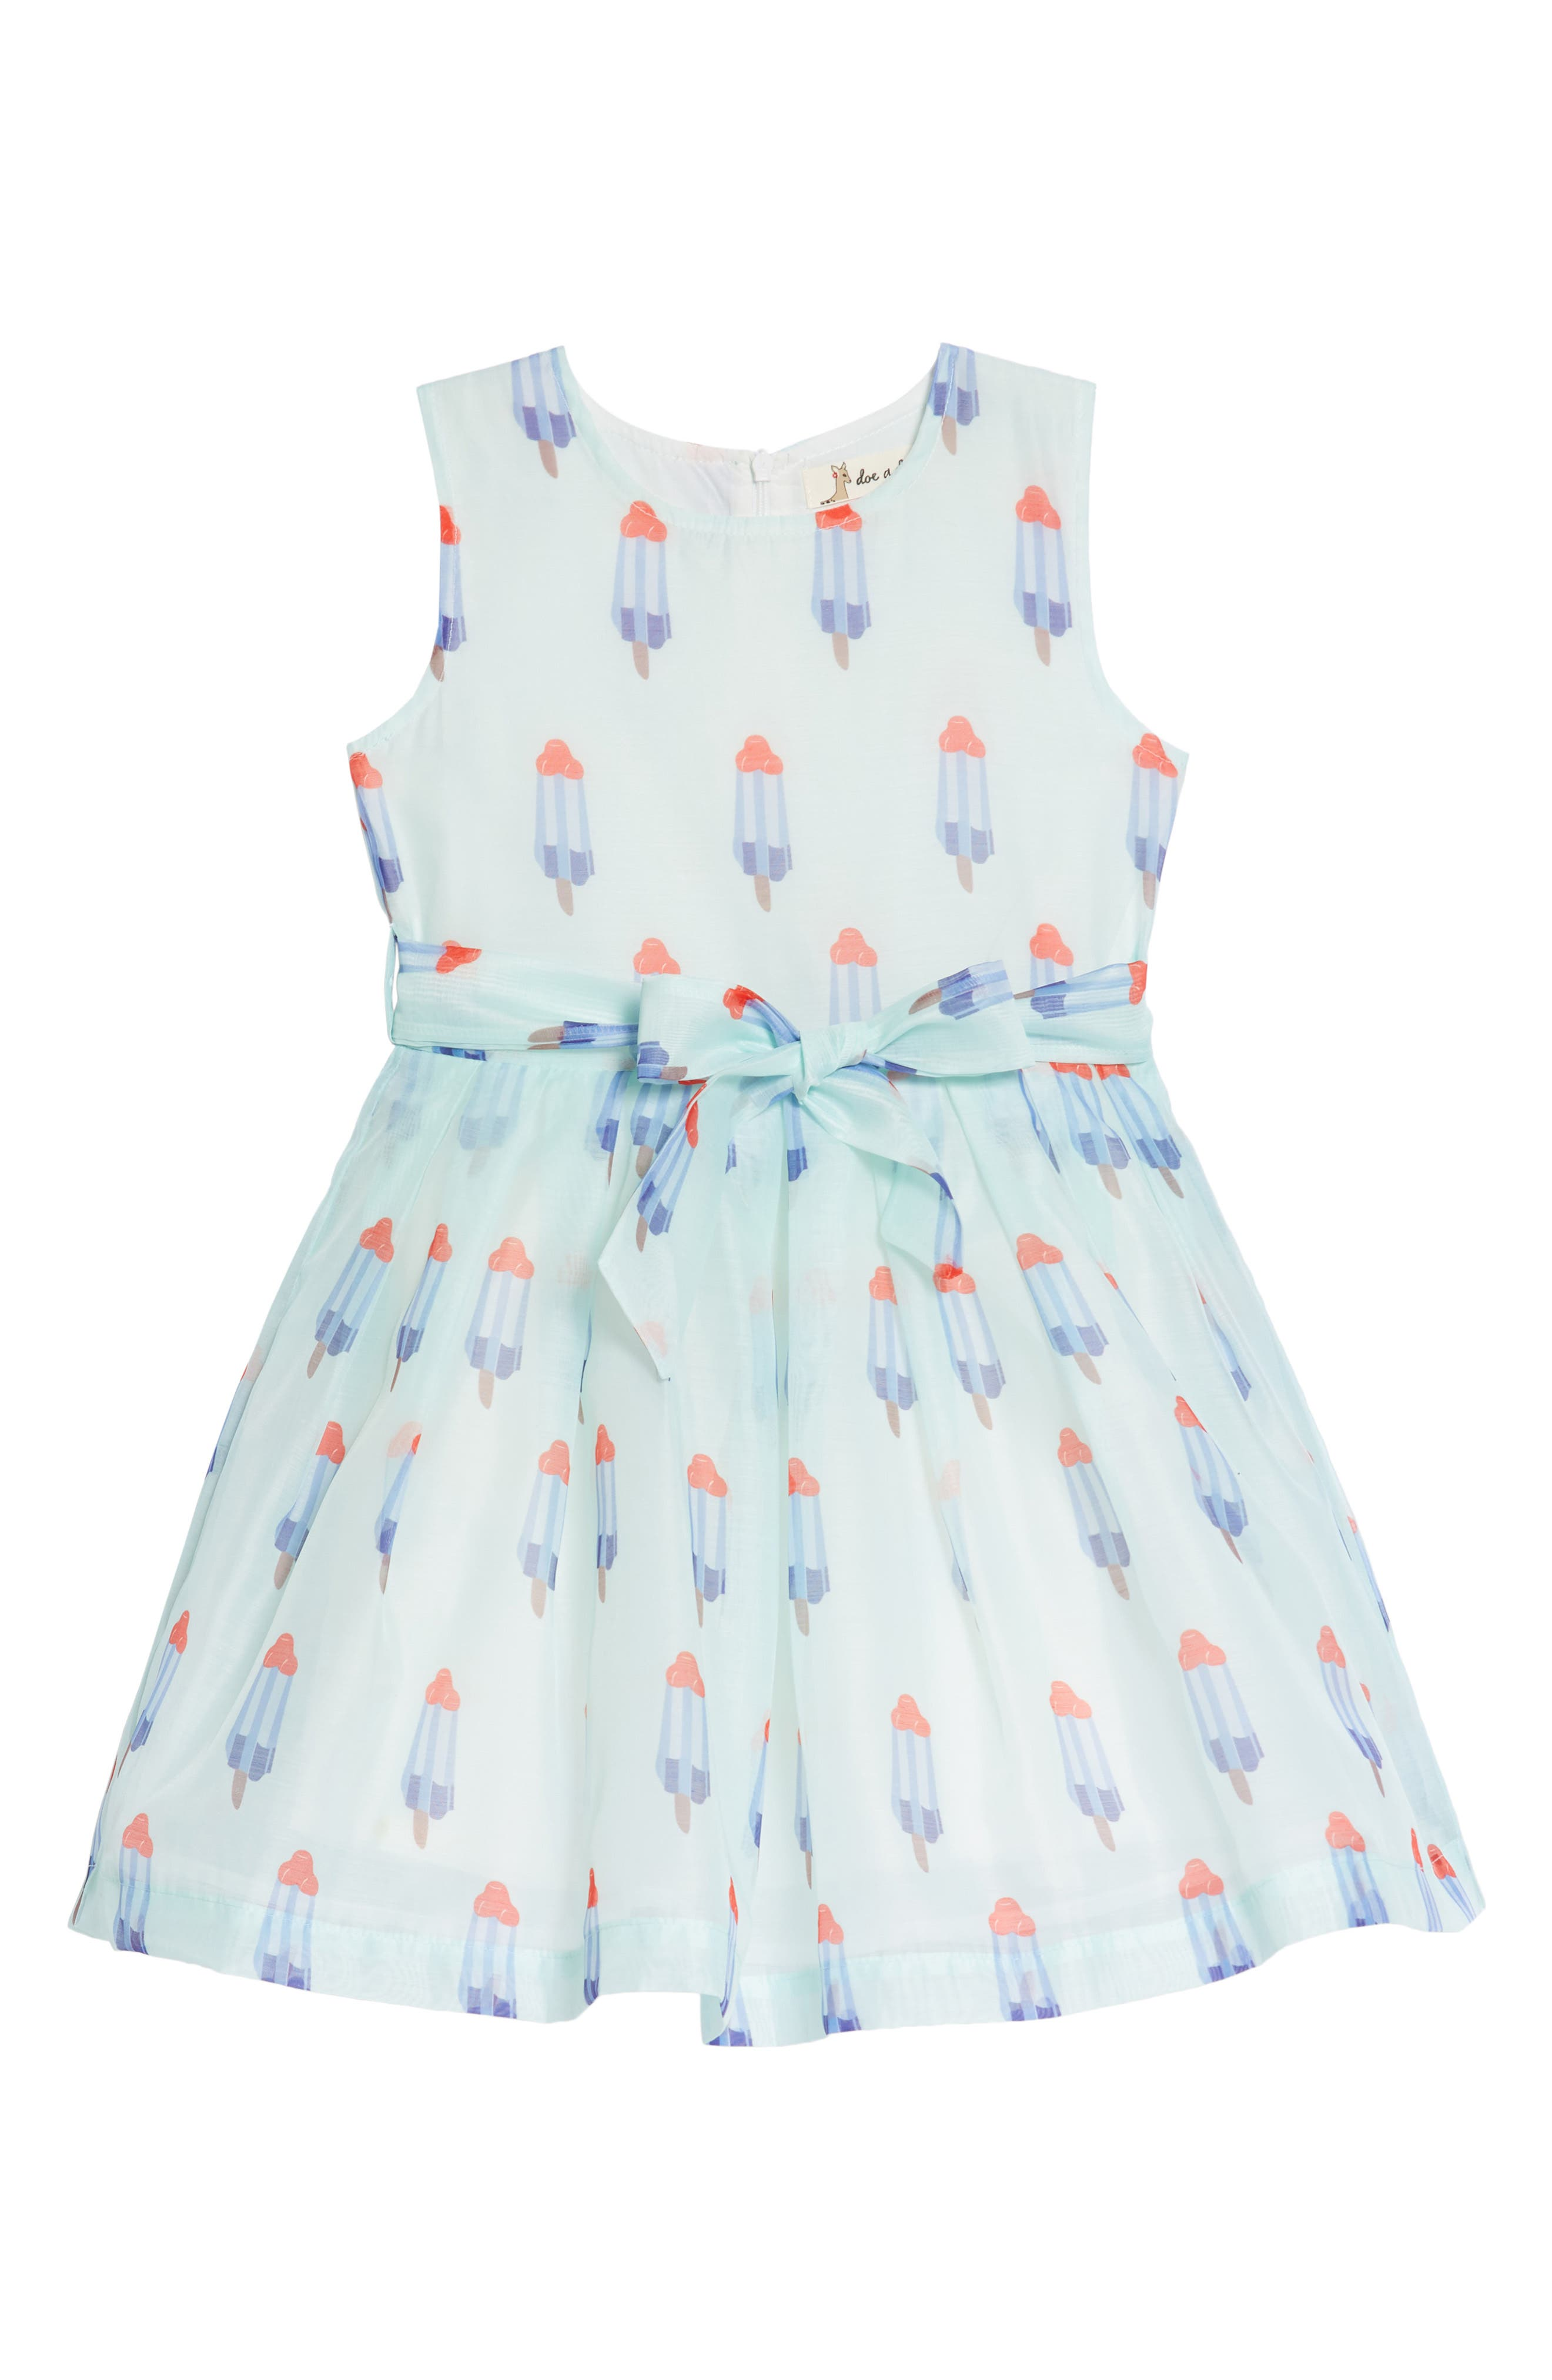 Popsicle Print Fit & Flare Dress,                             Main thumbnail 1, color,                             300